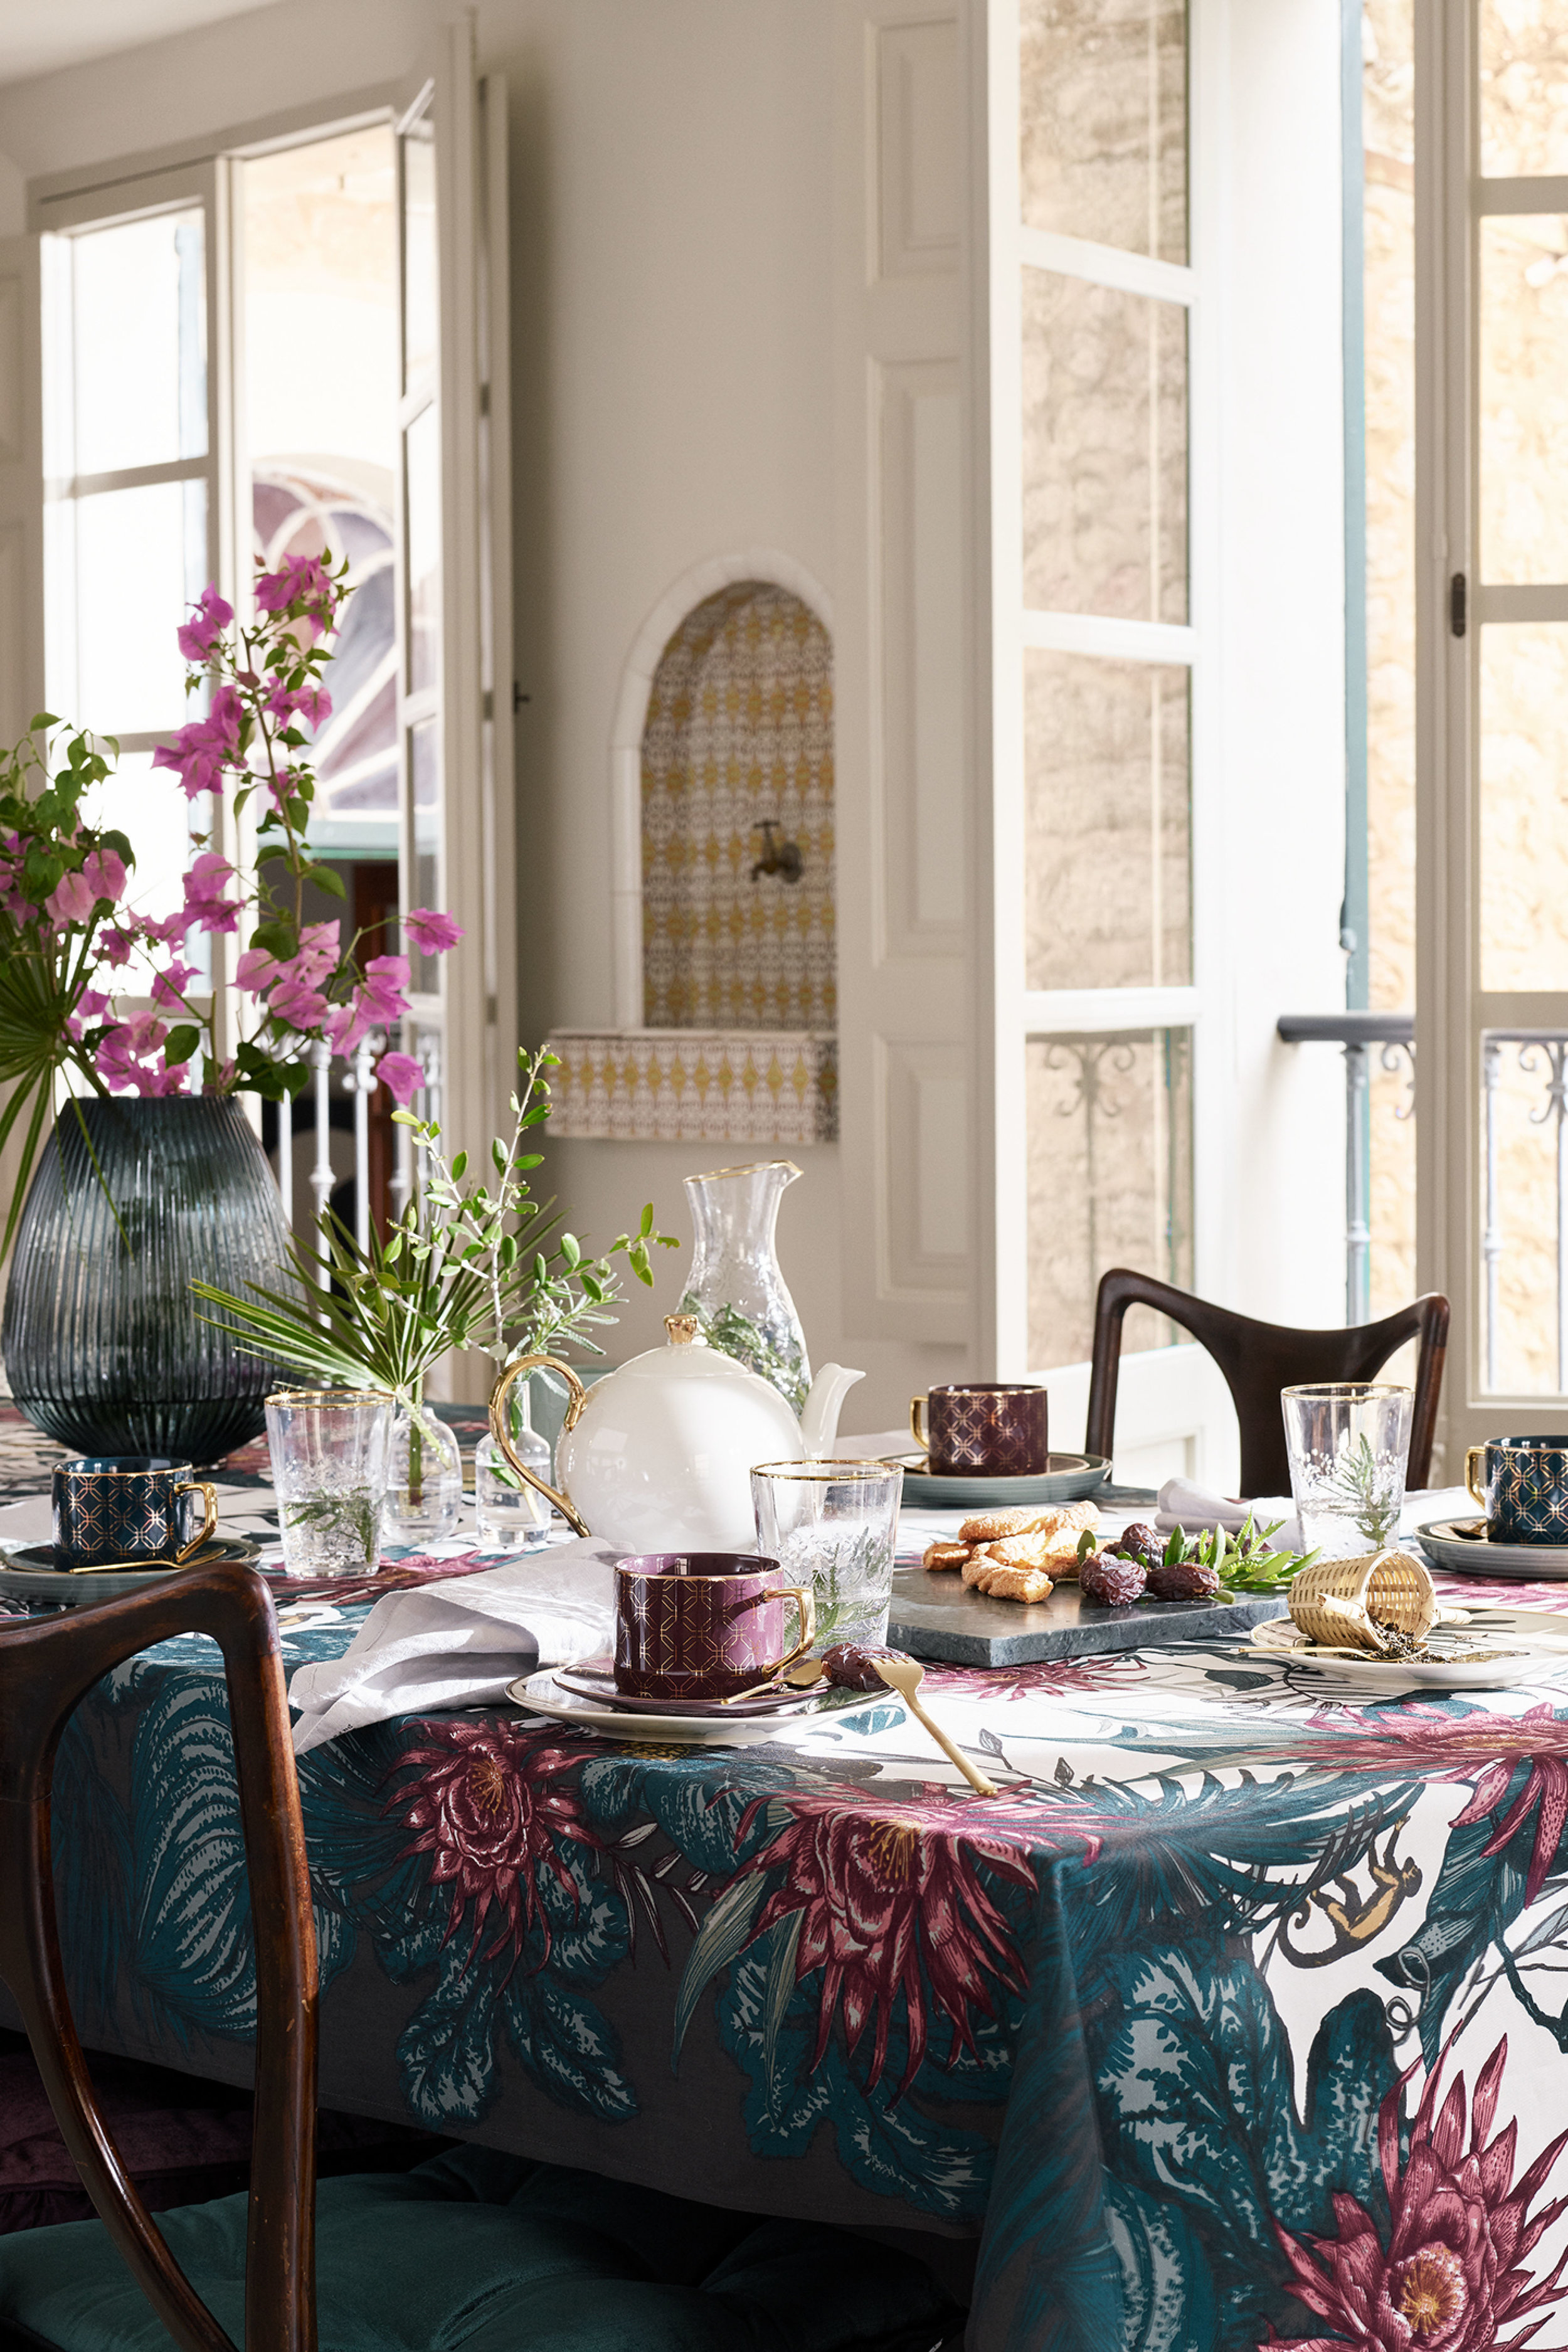 The most stunning table cloth -  H&M Home